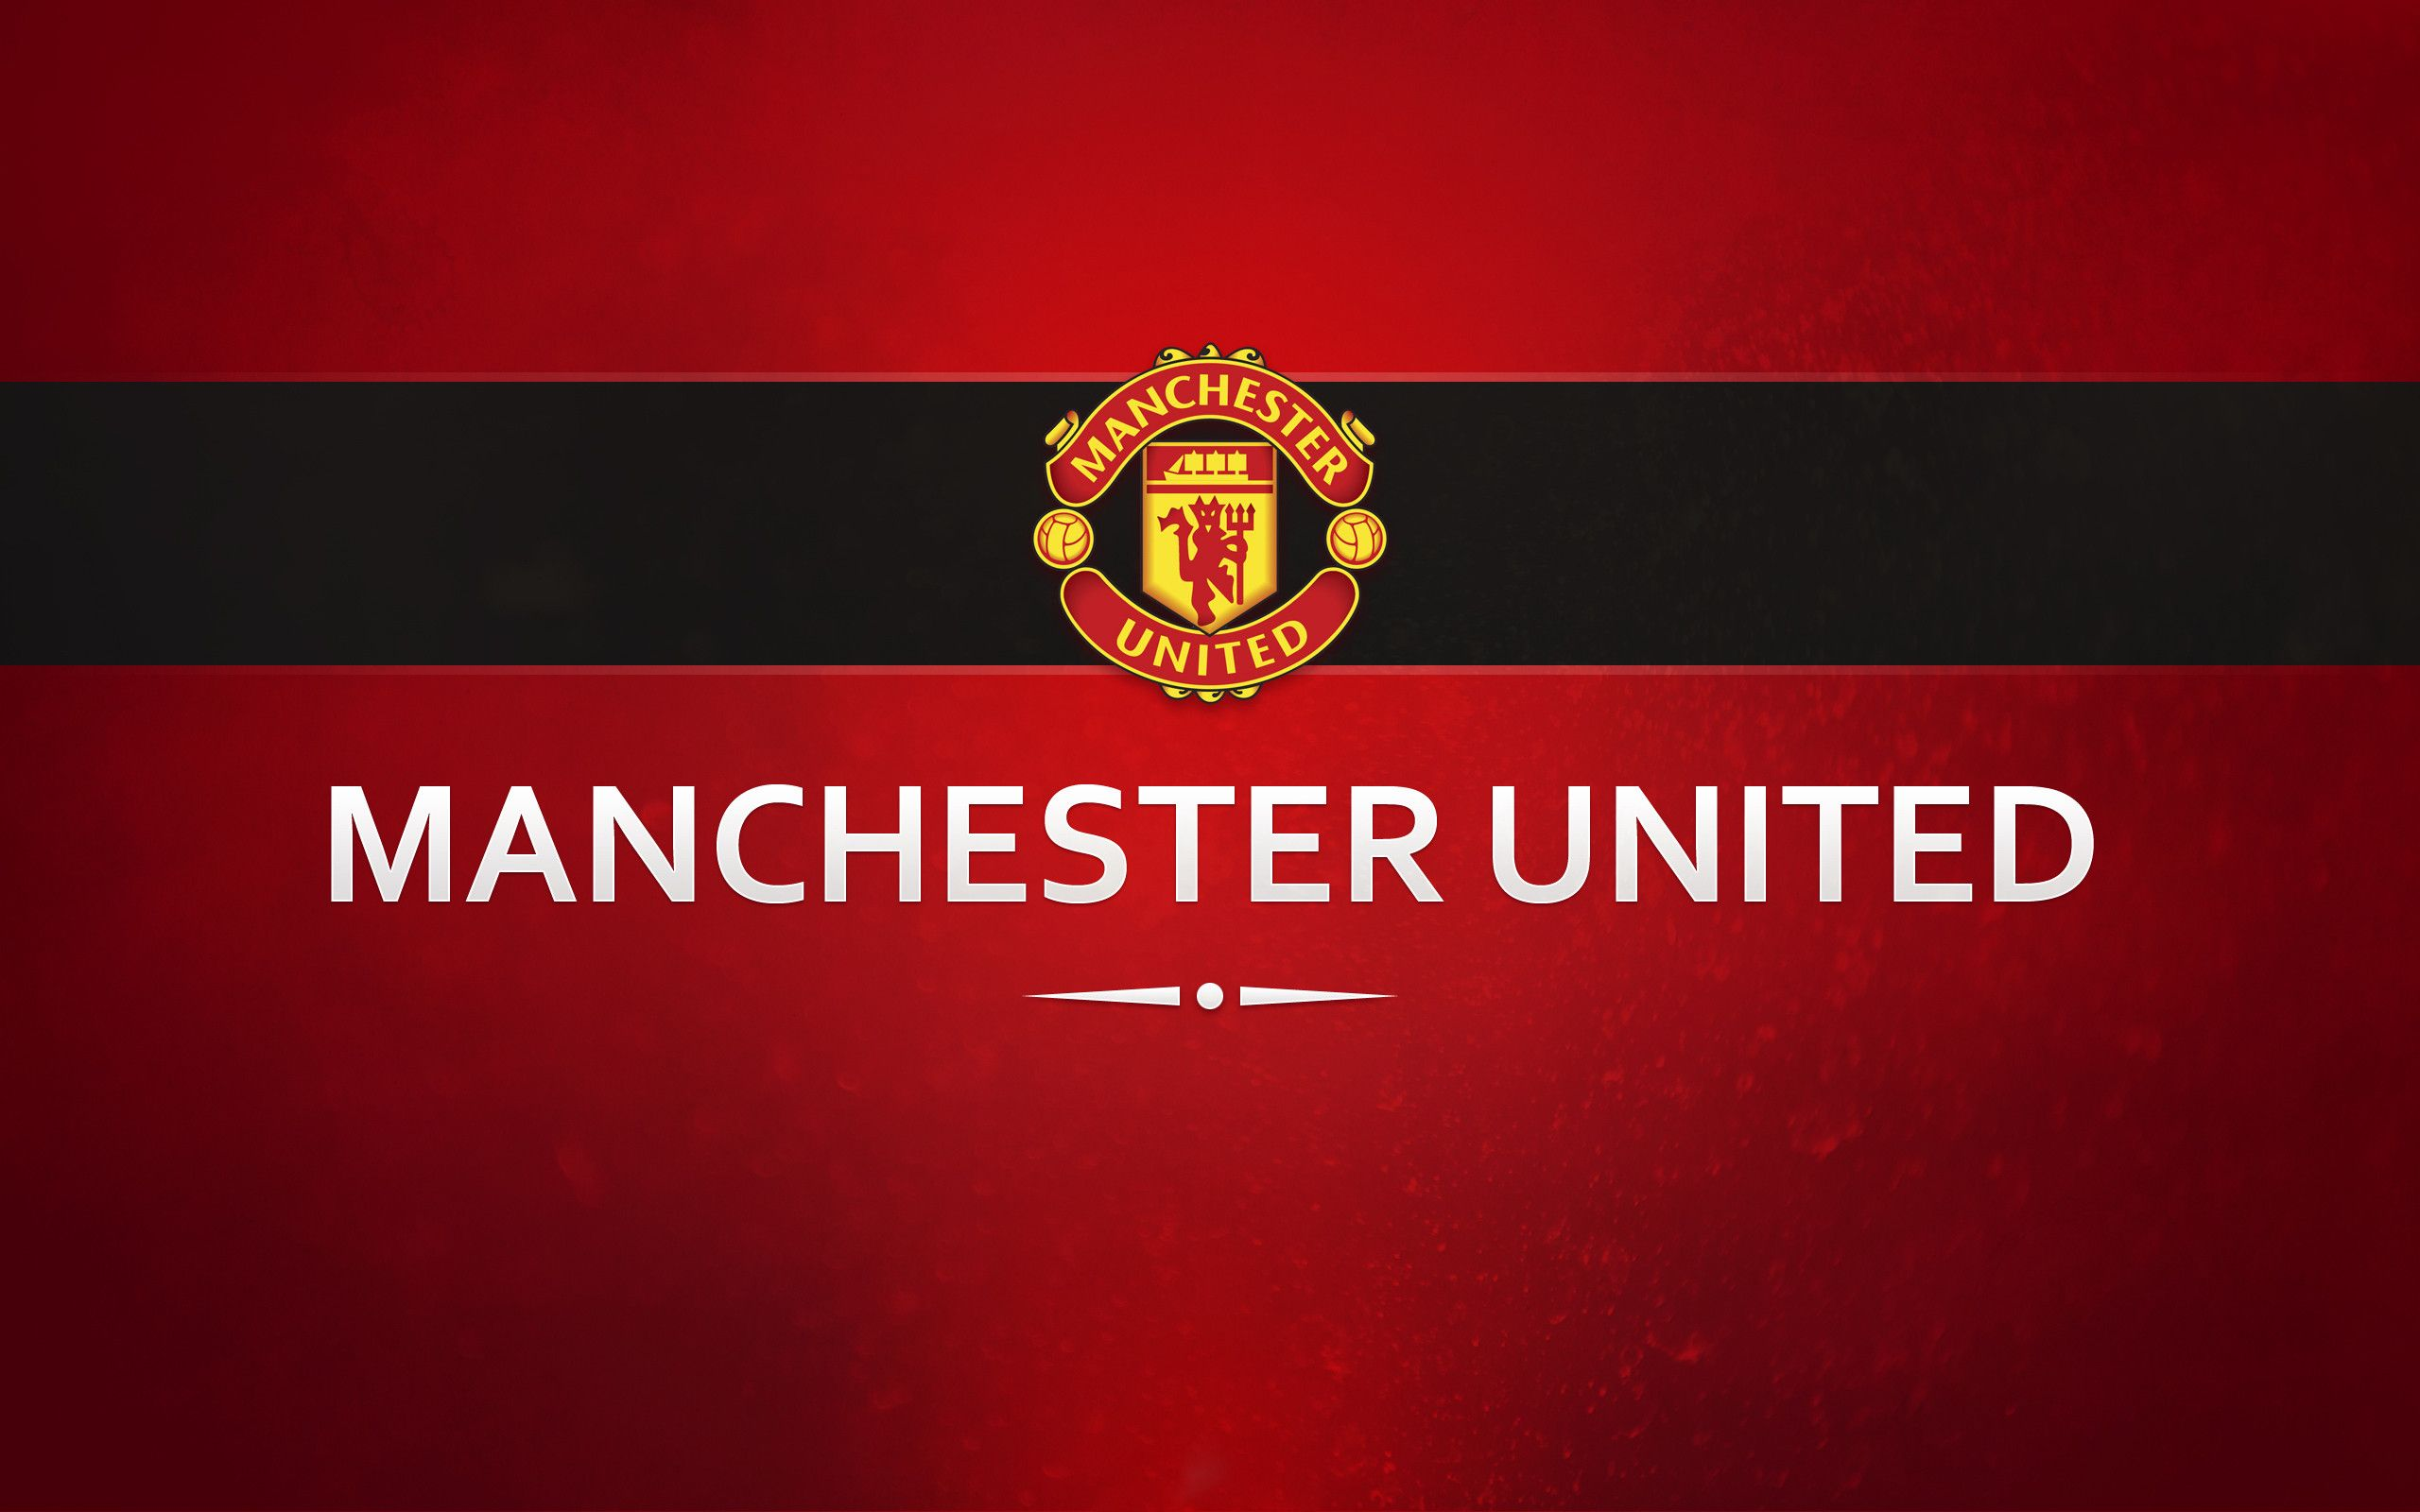 Man U Wallpapers